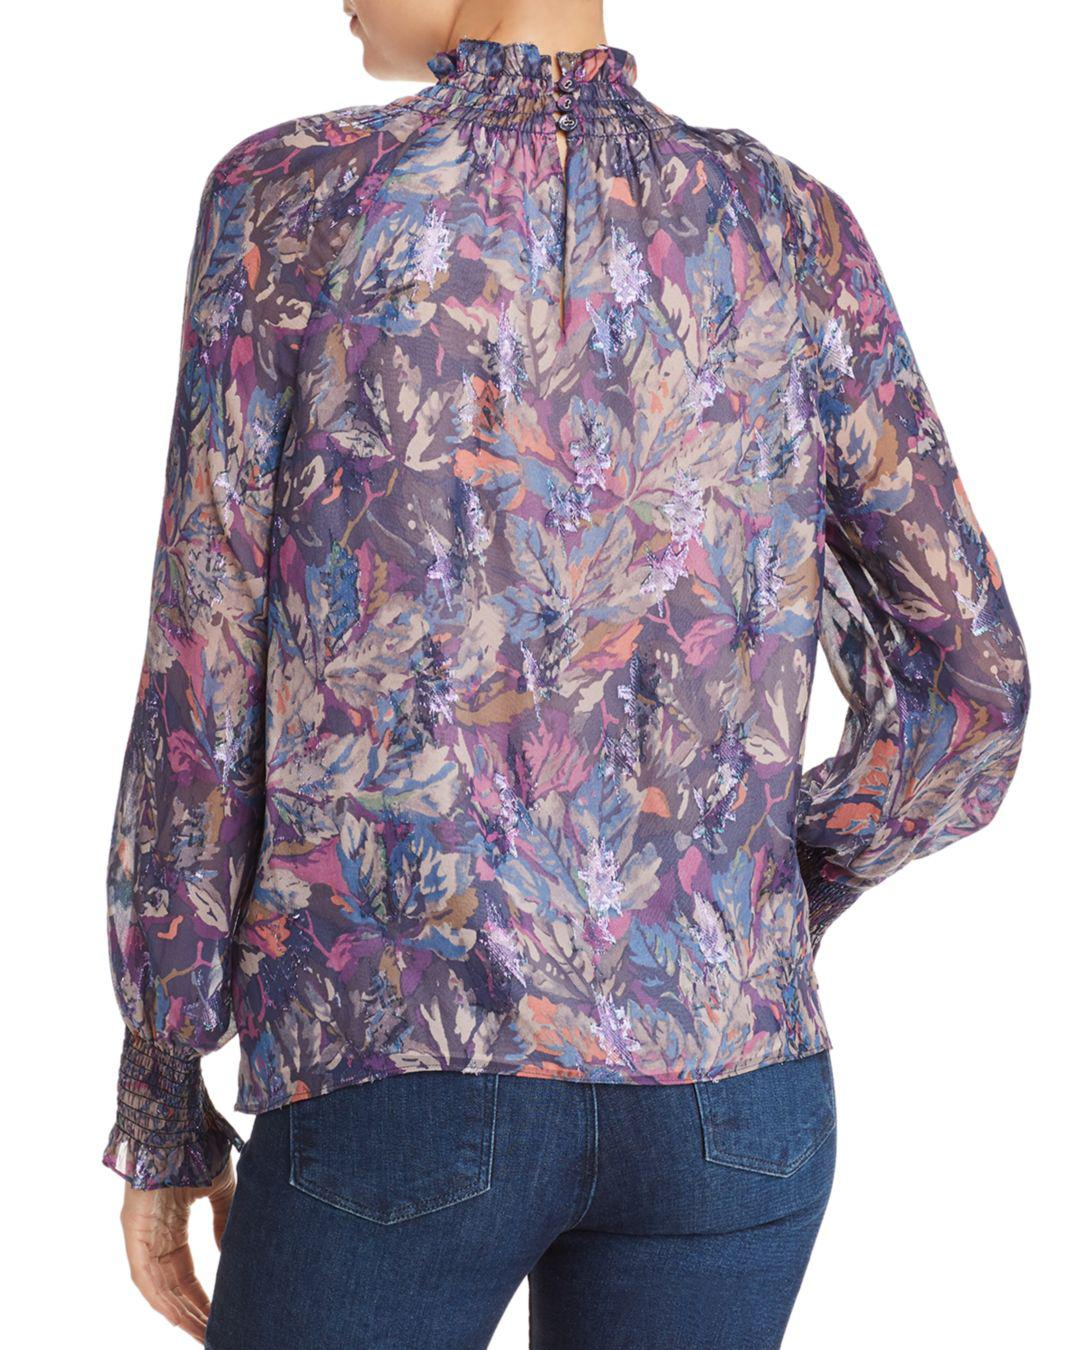 8b7a1b654ac388 Lyst - Rebecca Taylor Giverny Floral Blouse